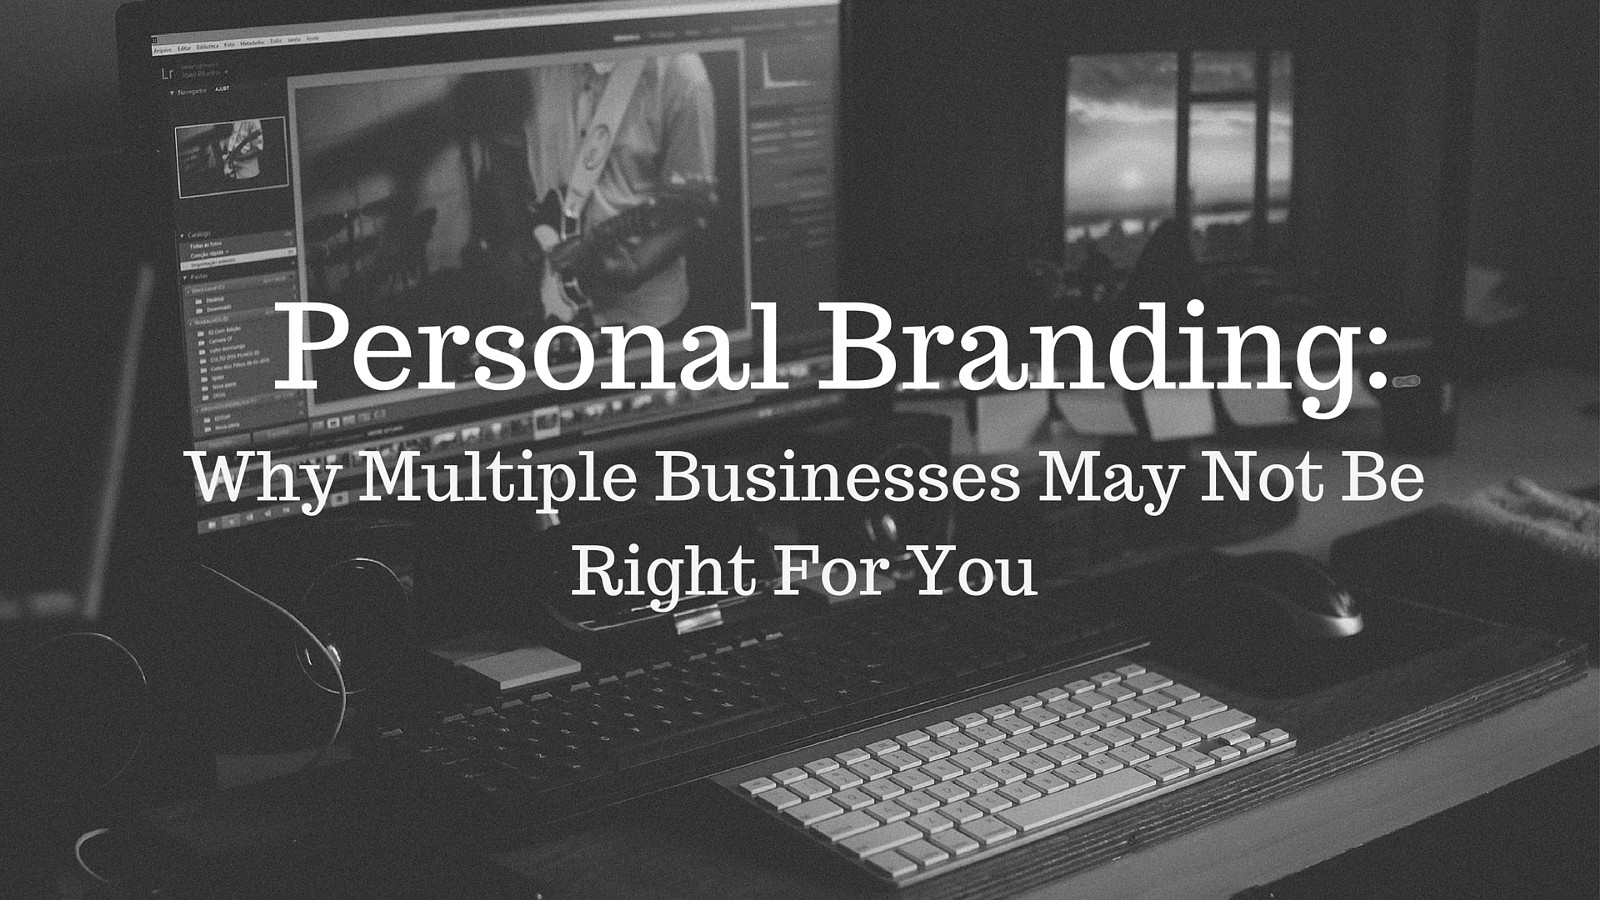 Why Multiple Businesses May Not Be Right For you